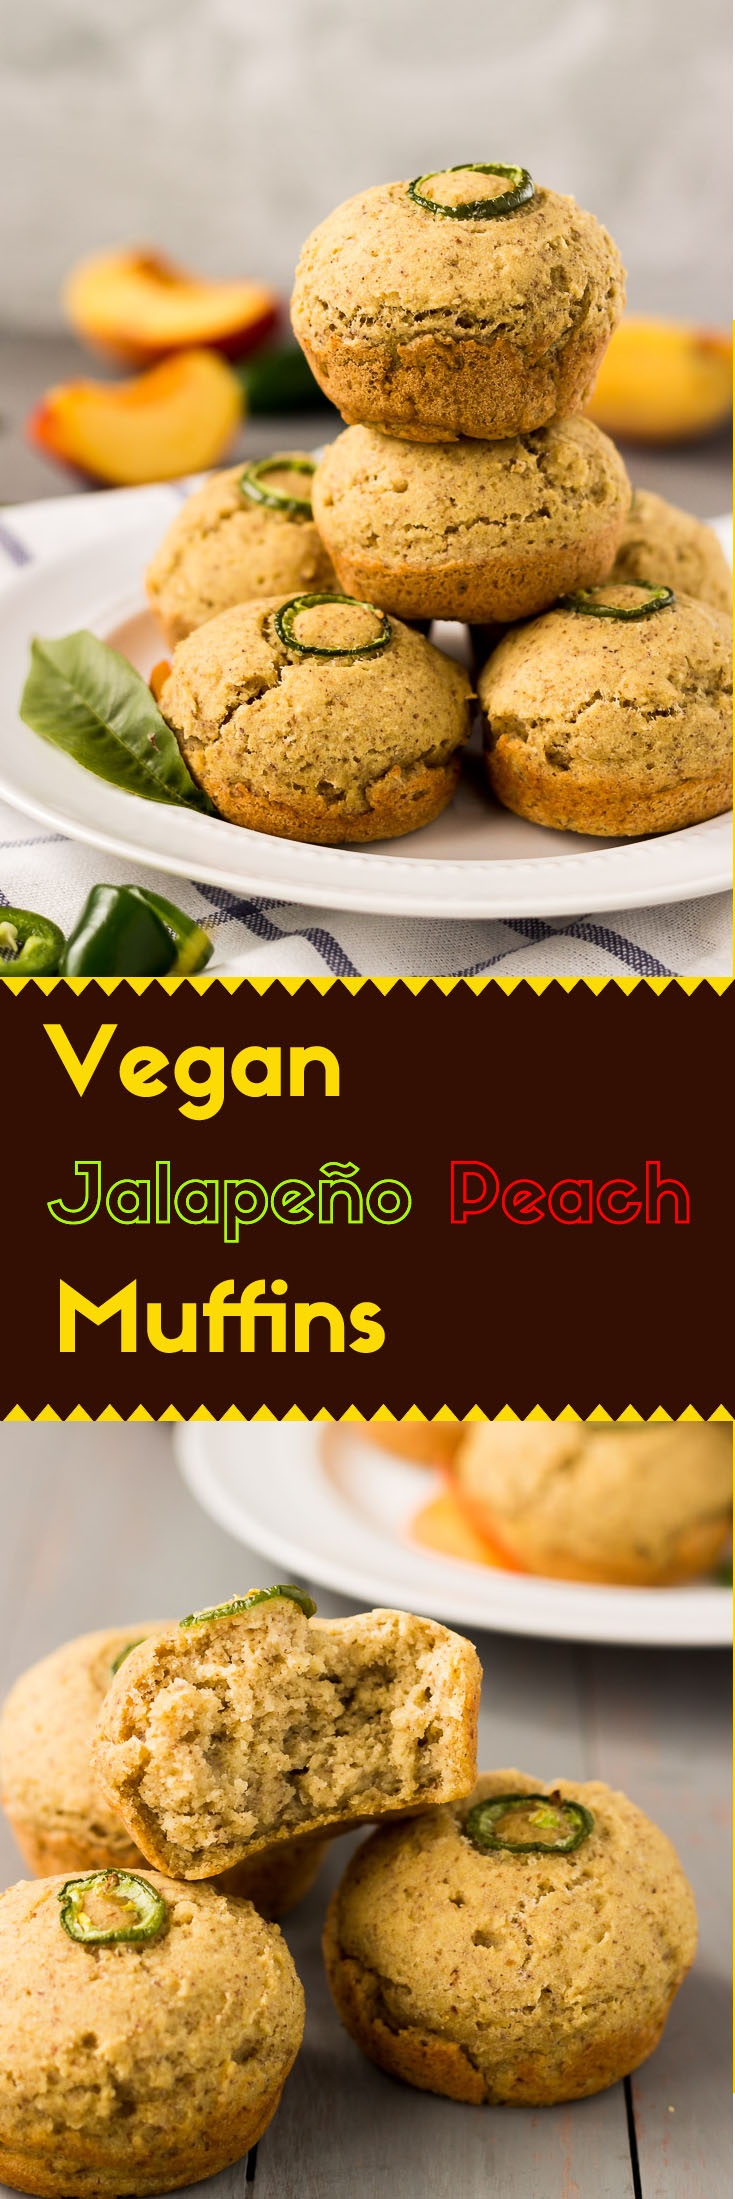 Give new life to your breakfast with these sweet and spicy vegan Jalapeño peach muffins. The enriched peach flavor with a bit touch of heat is just perfect to kick off the day.  (#vegan #glutenfree #muffins #glutenfreebaking #glutenfreevegan #glutenfreemuffins #glutenfreebreakfast #veganbreakfast)